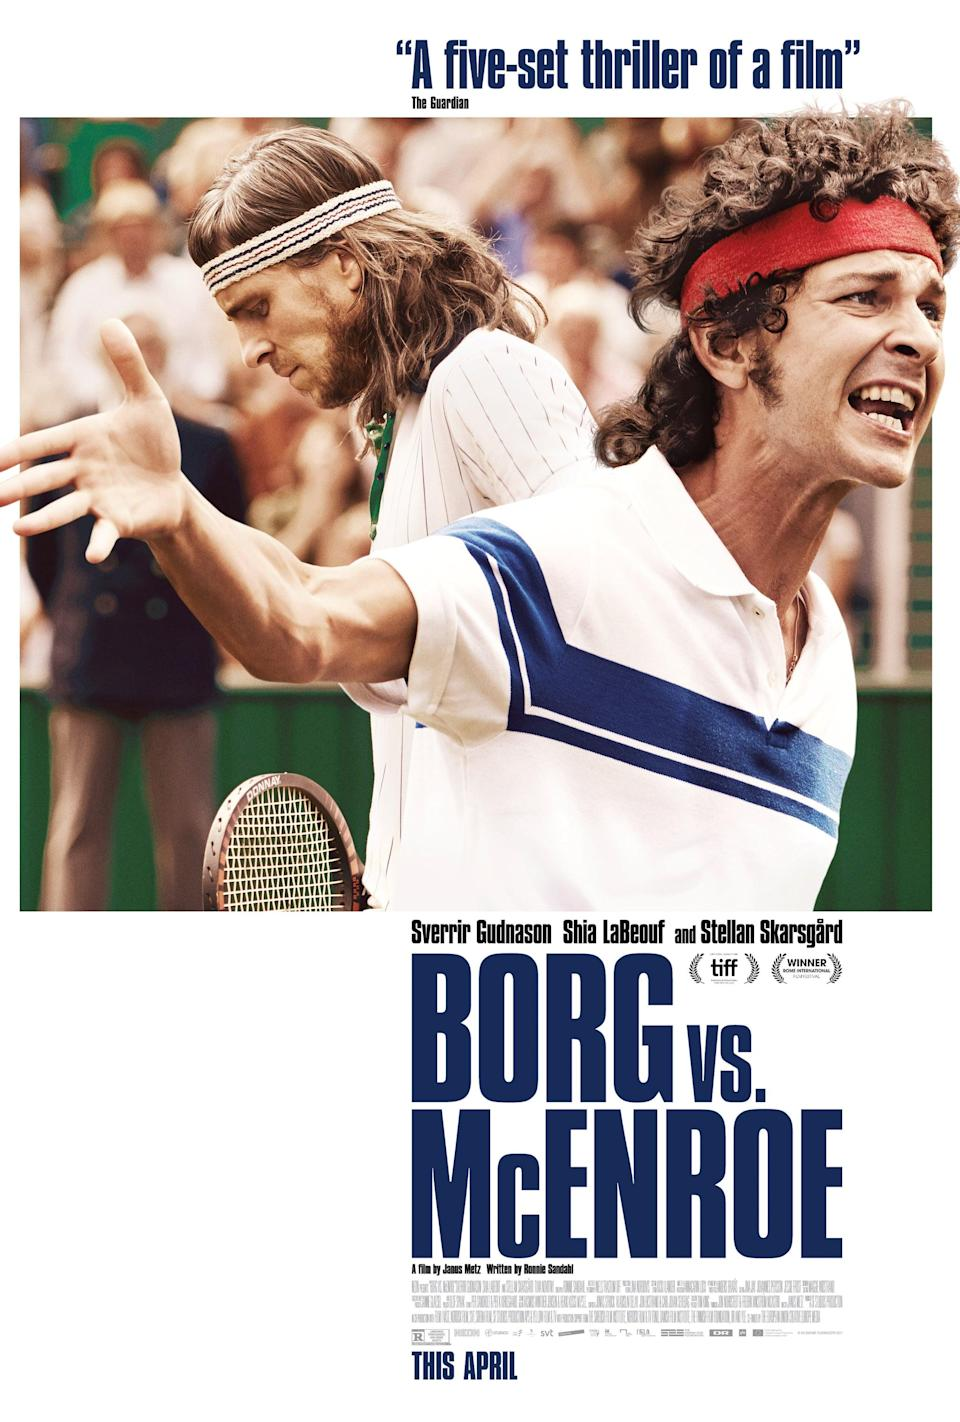 """<p>At the height of his career, tennis player Björn Borg prepares for the 1980 Wimbledon championship where he'll face American athlete John McEnroe. All eyes are on Borg, and if he can manage to pull it off, this will be his fifth Wimbledon championship win. It's now or never.</p> <p><a href=""""http://www.hulu.com/movie/borg-vs-mcenroe-95852fe0-1222-495b-85af-b05e2d3d6545"""" class=""""link rapid-noclick-resp"""" rel=""""nofollow noopener"""" target=""""_blank"""" data-ylk=""""slk:Watch Borg vs. McEnroe on Hulu."""">Watch <strong>Borg vs. McEnroe</strong> on Hulu.</a></p>"""